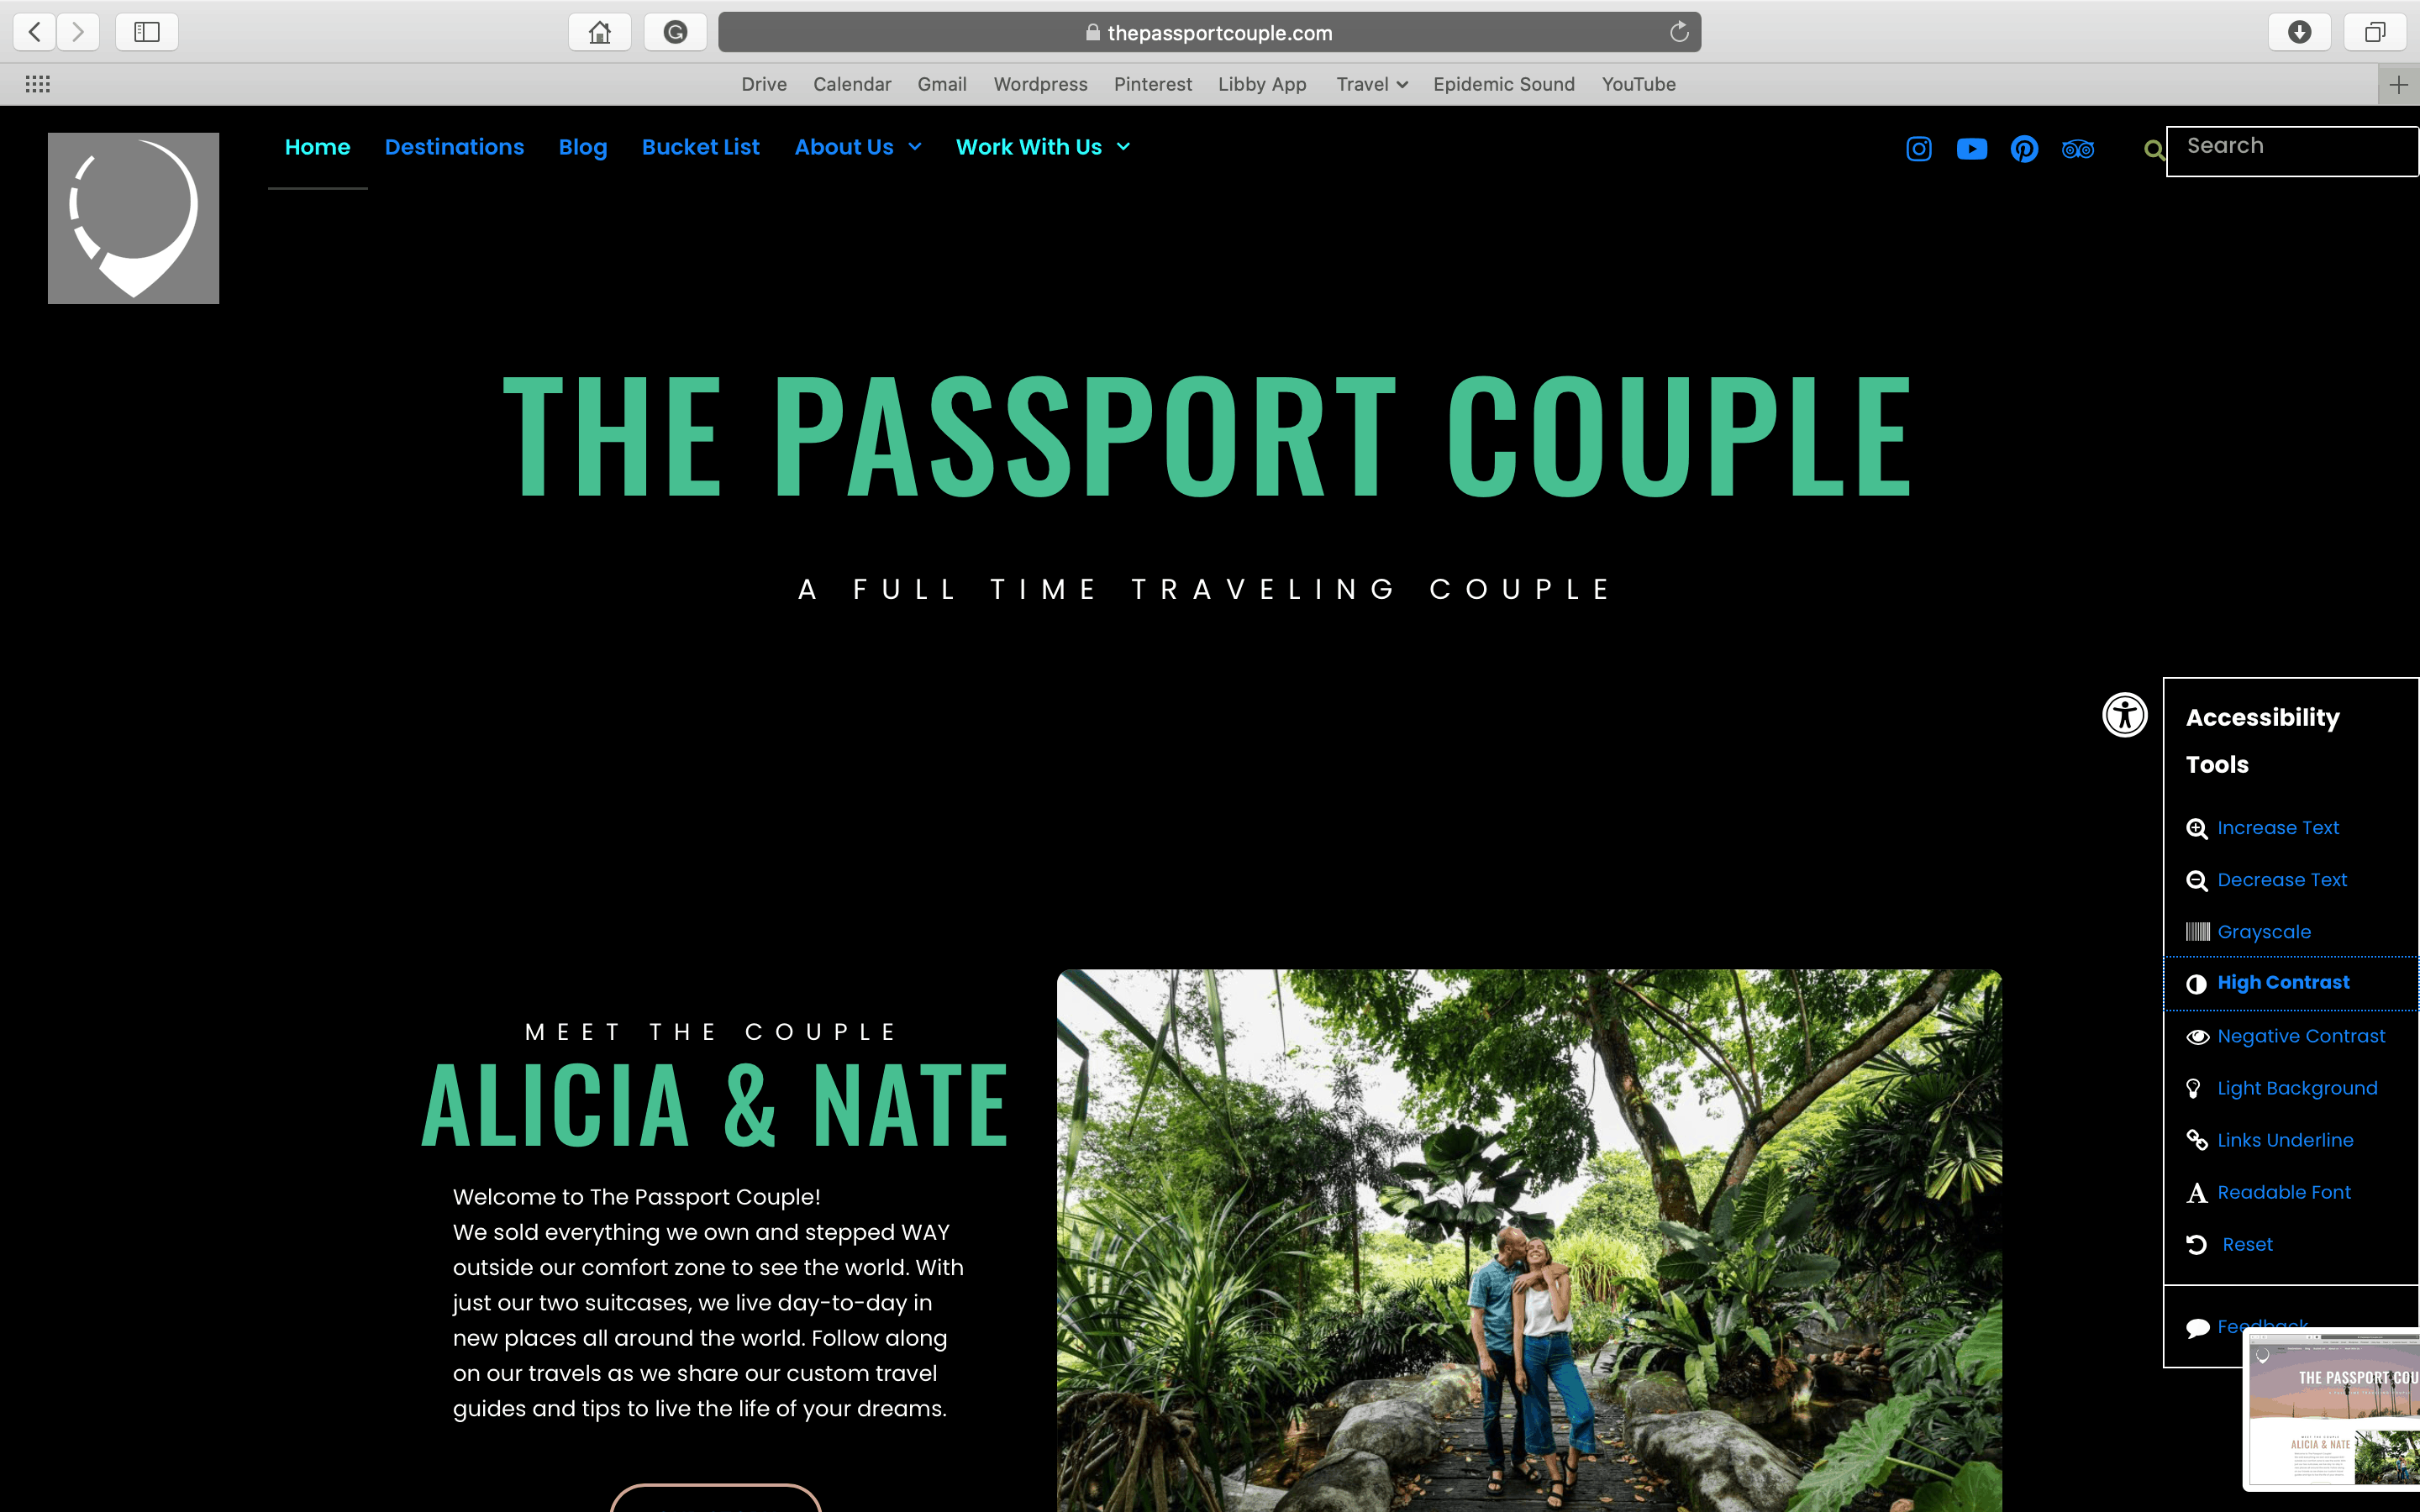 Accessibility Toolbar on The Passport Couple Homepage with High Contrast